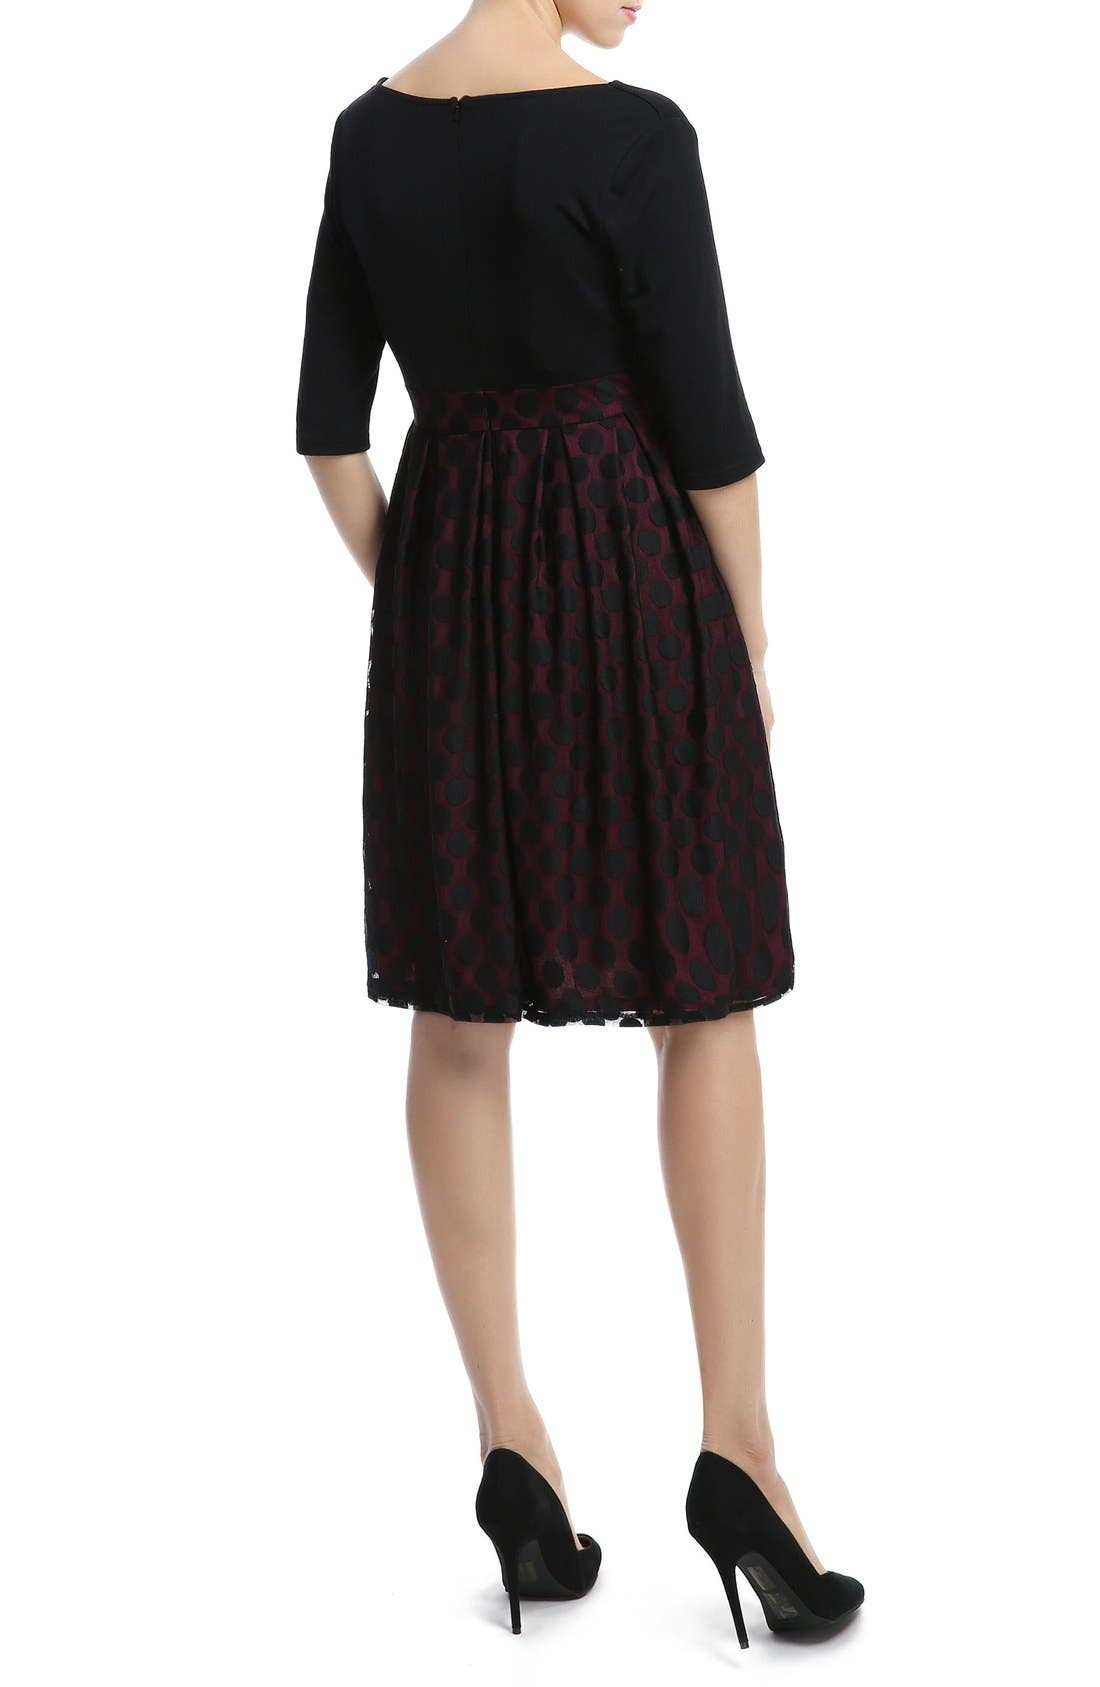 KIMI AND KAI,                             'Liliana' Polka Dot Lace Maternity Dress,                             Alternate thumbnail 2, color,                             003